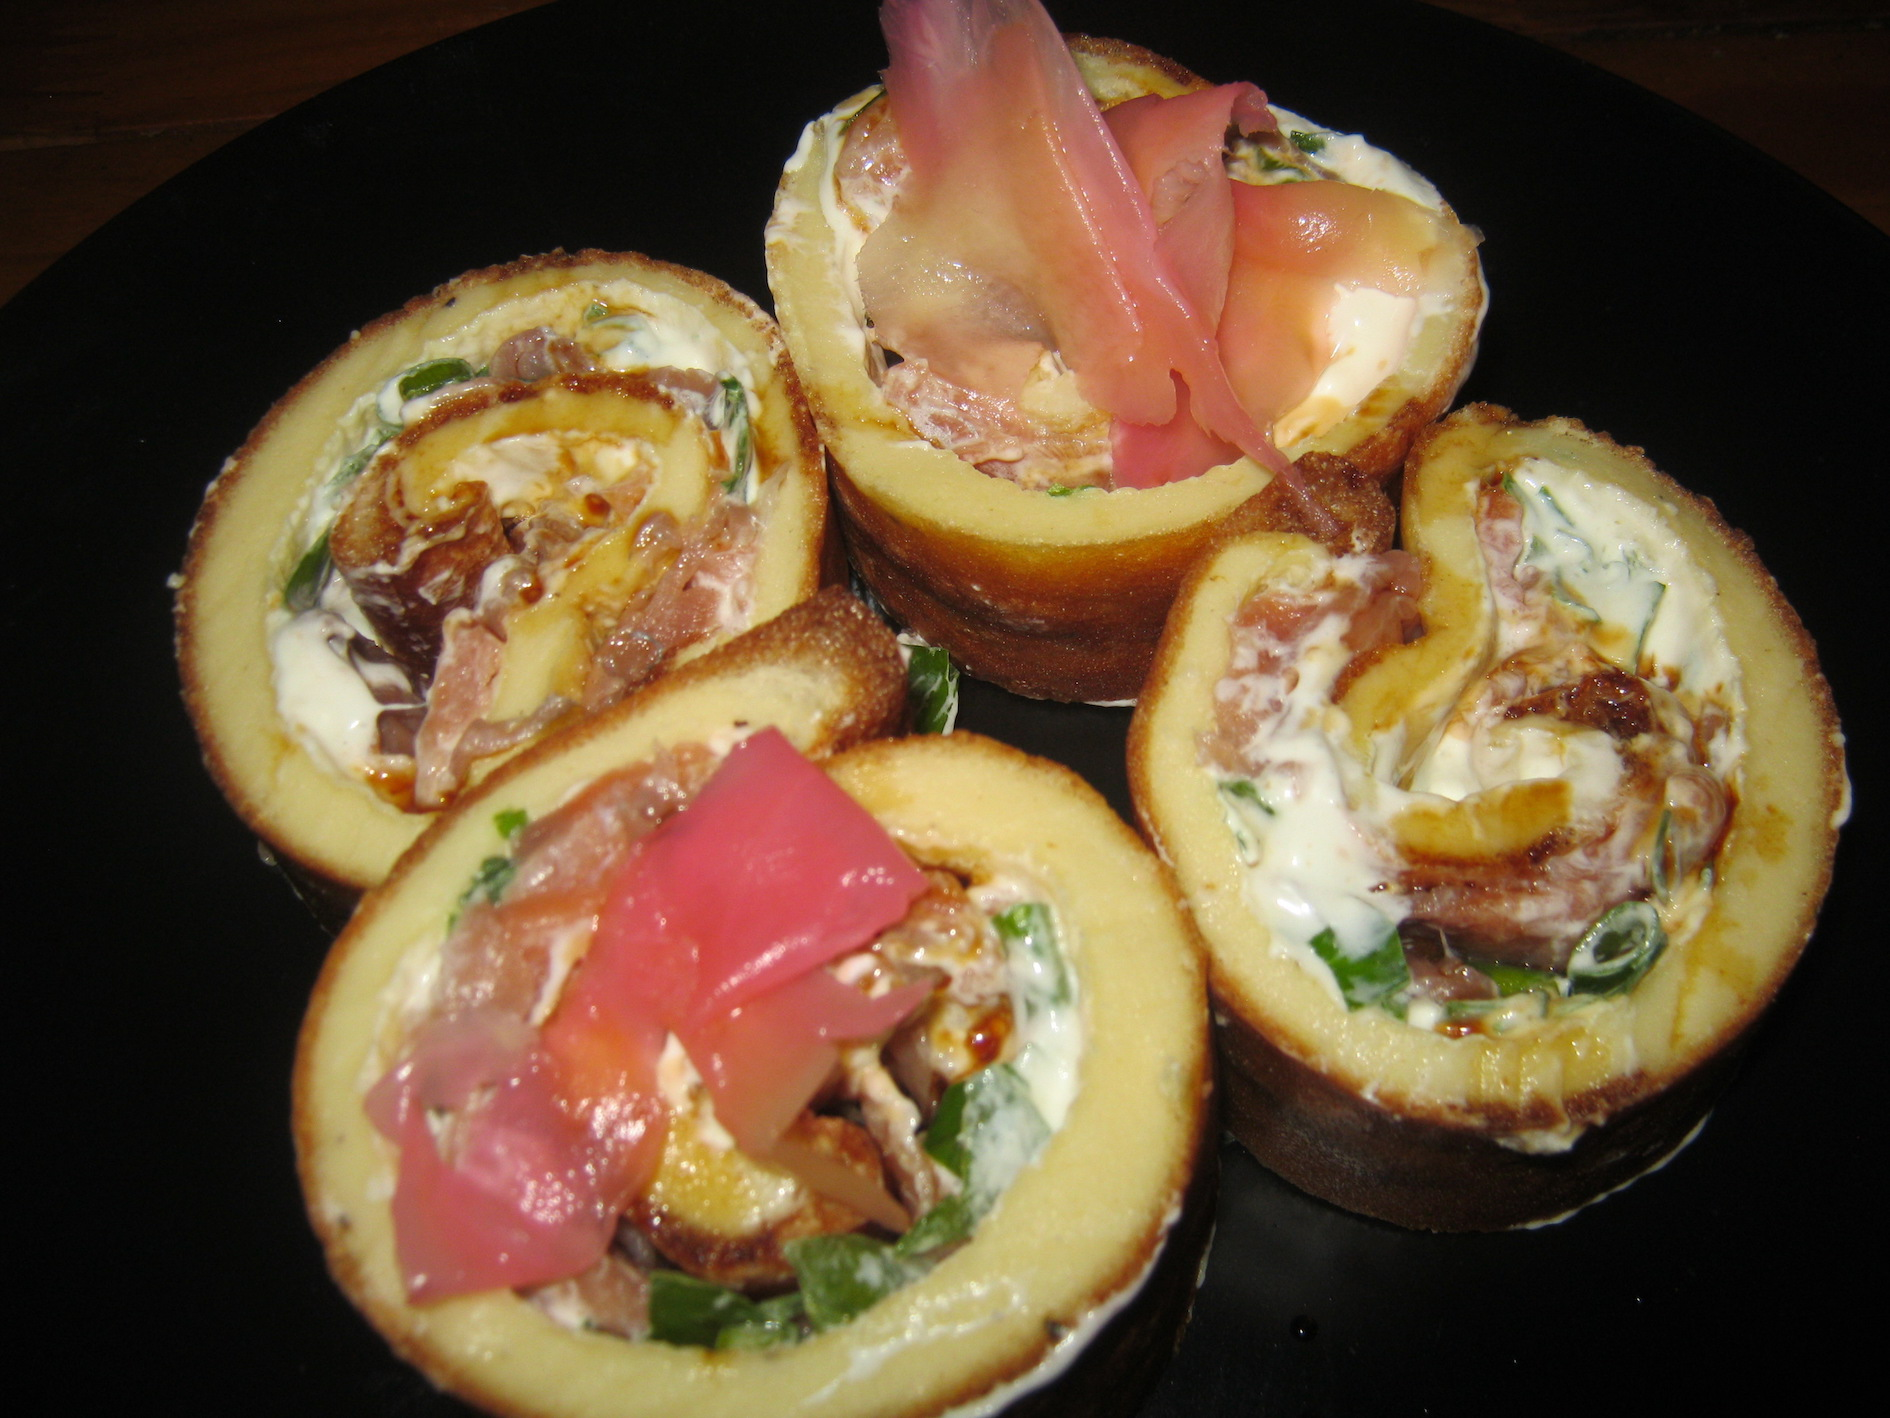 Pancake rolls with smoked salmon, sour cream, wasabi and spring onion filling, topped with soy sauce and pickled ginger